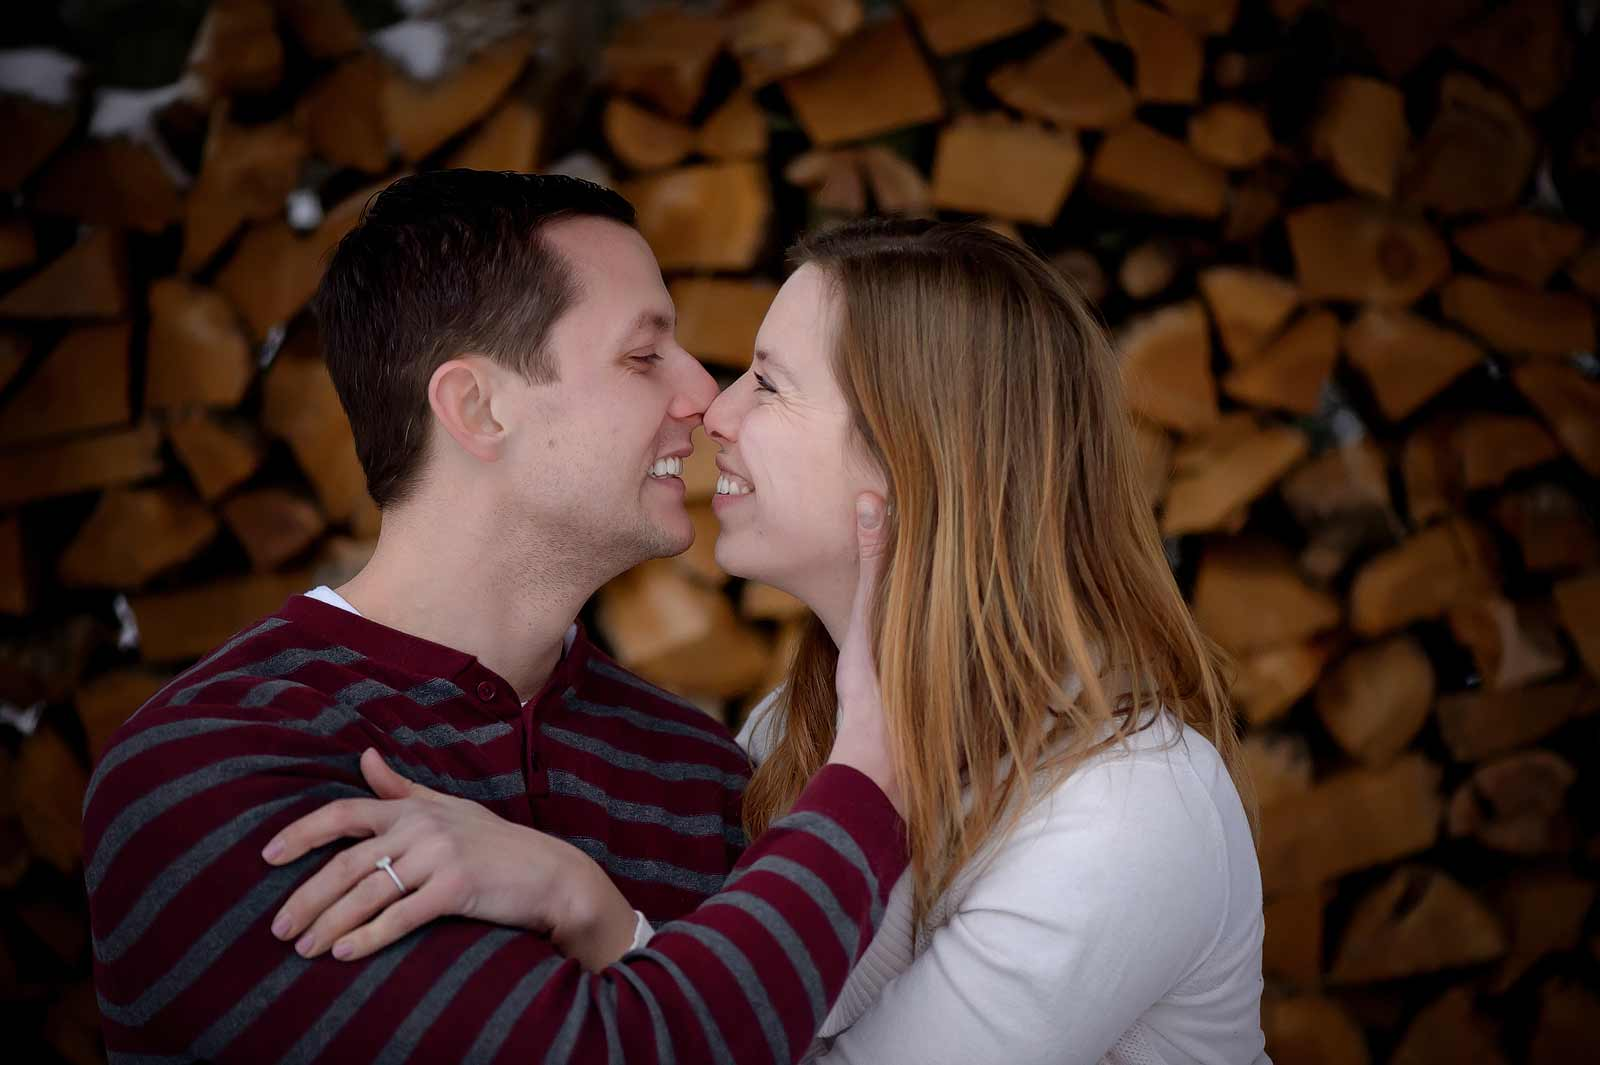 Bridget and Mike's winter engagement session in Manotick, Ottawa, Ontario, cuddling in the snow in front of a wood pile